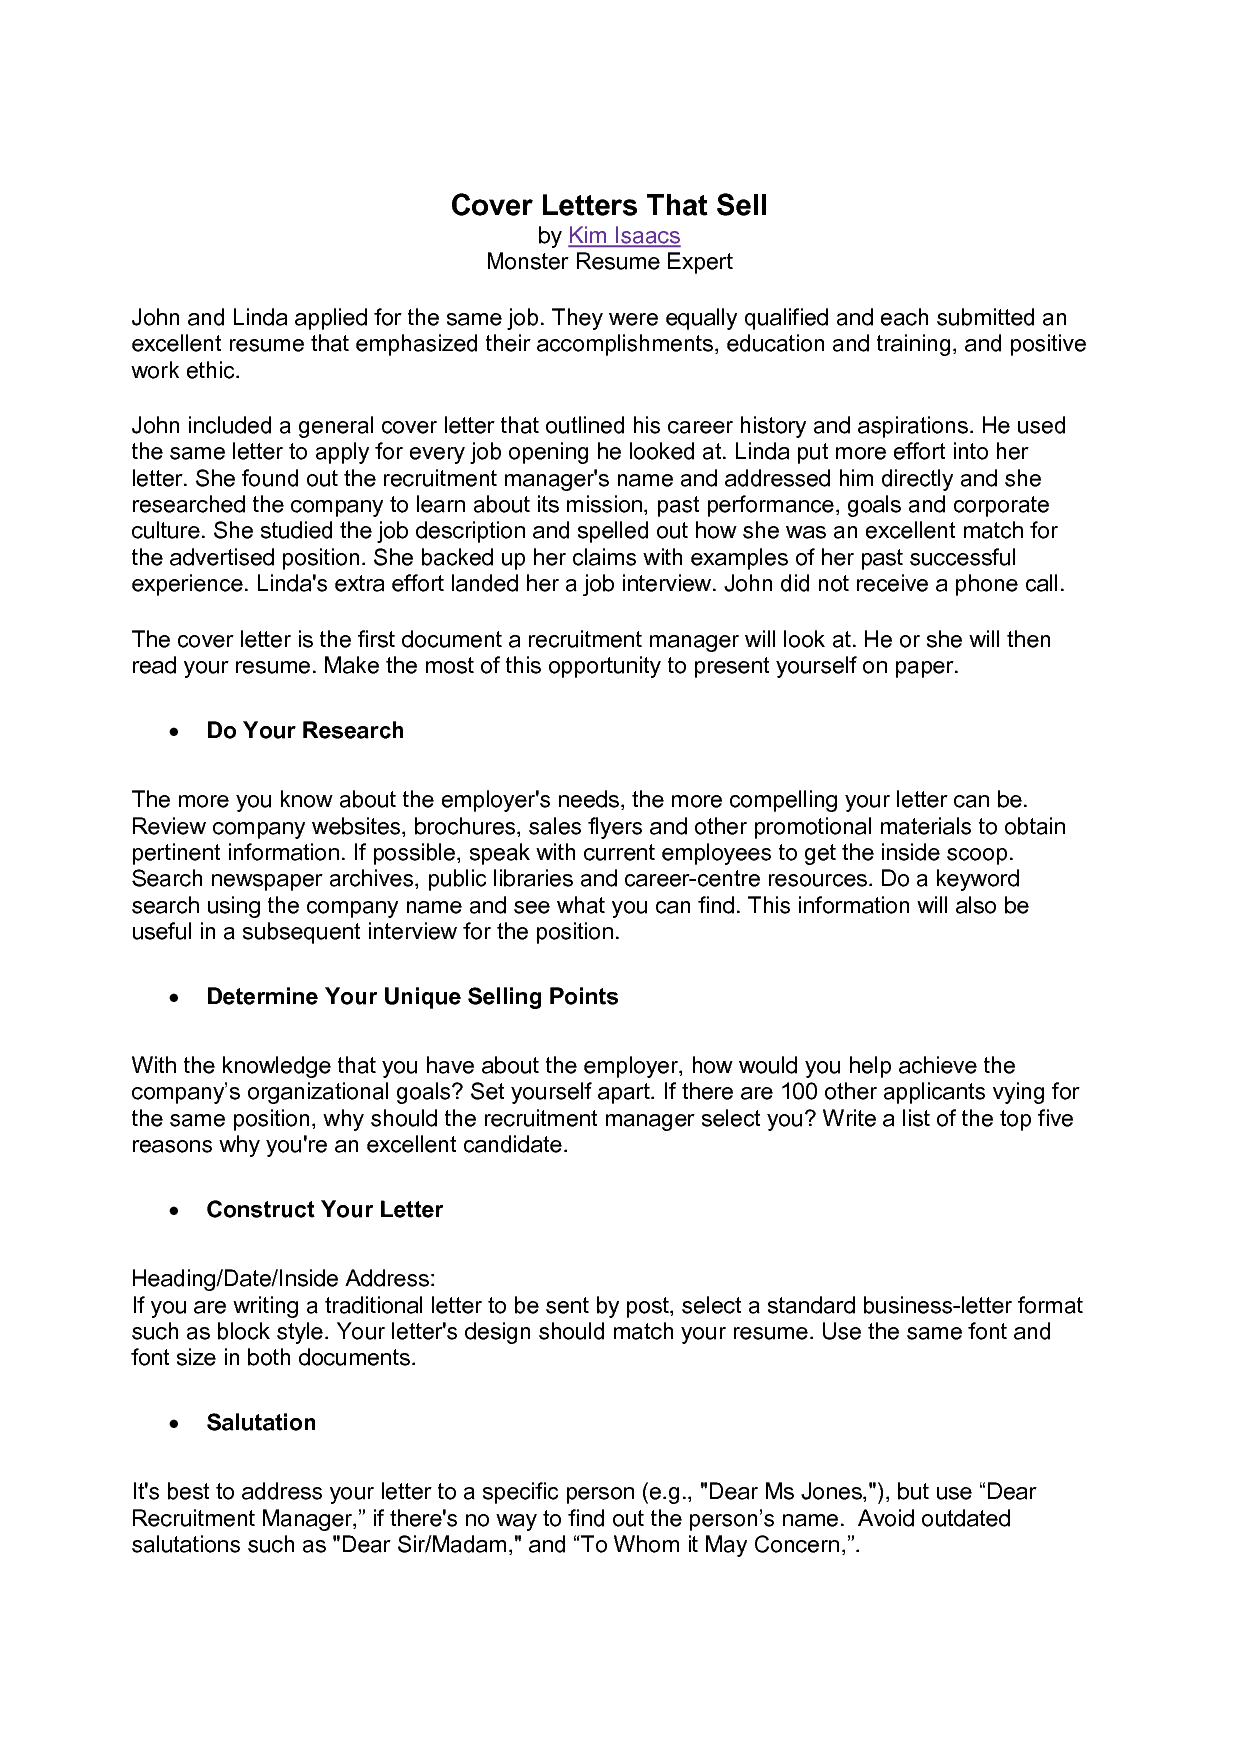 Cover Letter Template Monster , #cover #CoverLetterTemplate